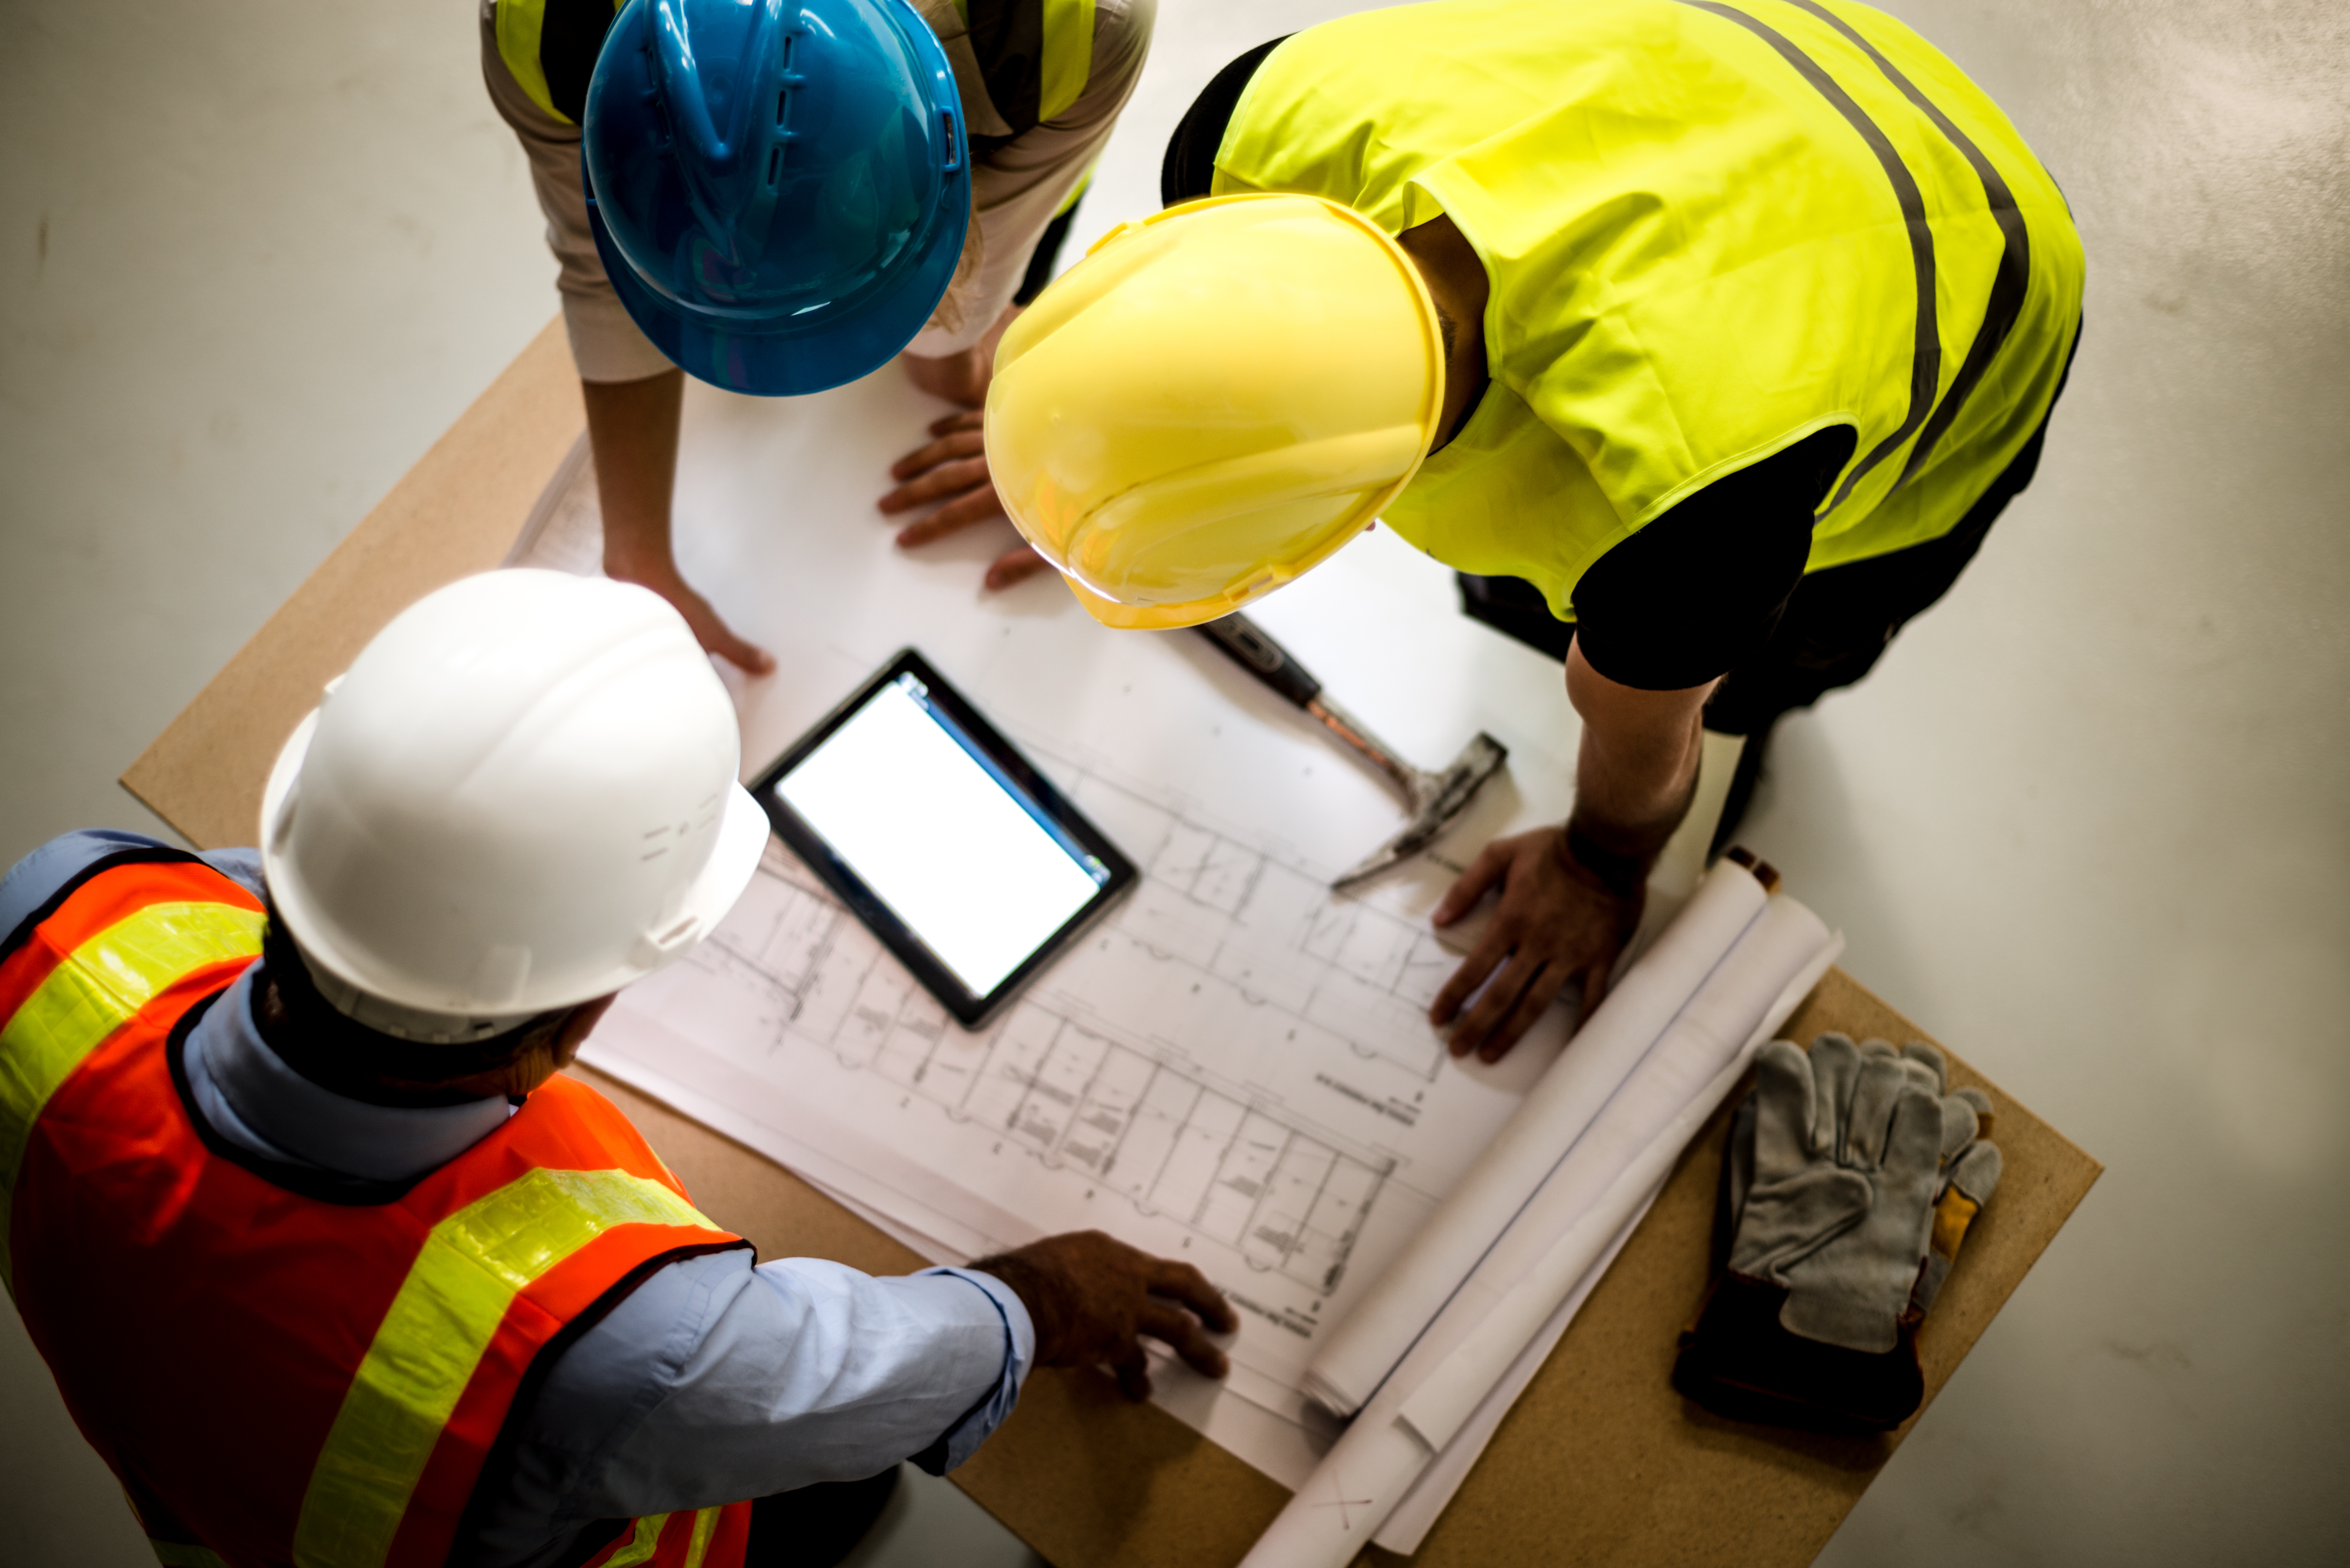 A view from above of three construction workers gathered around a table looking over construction plans and a tablet.